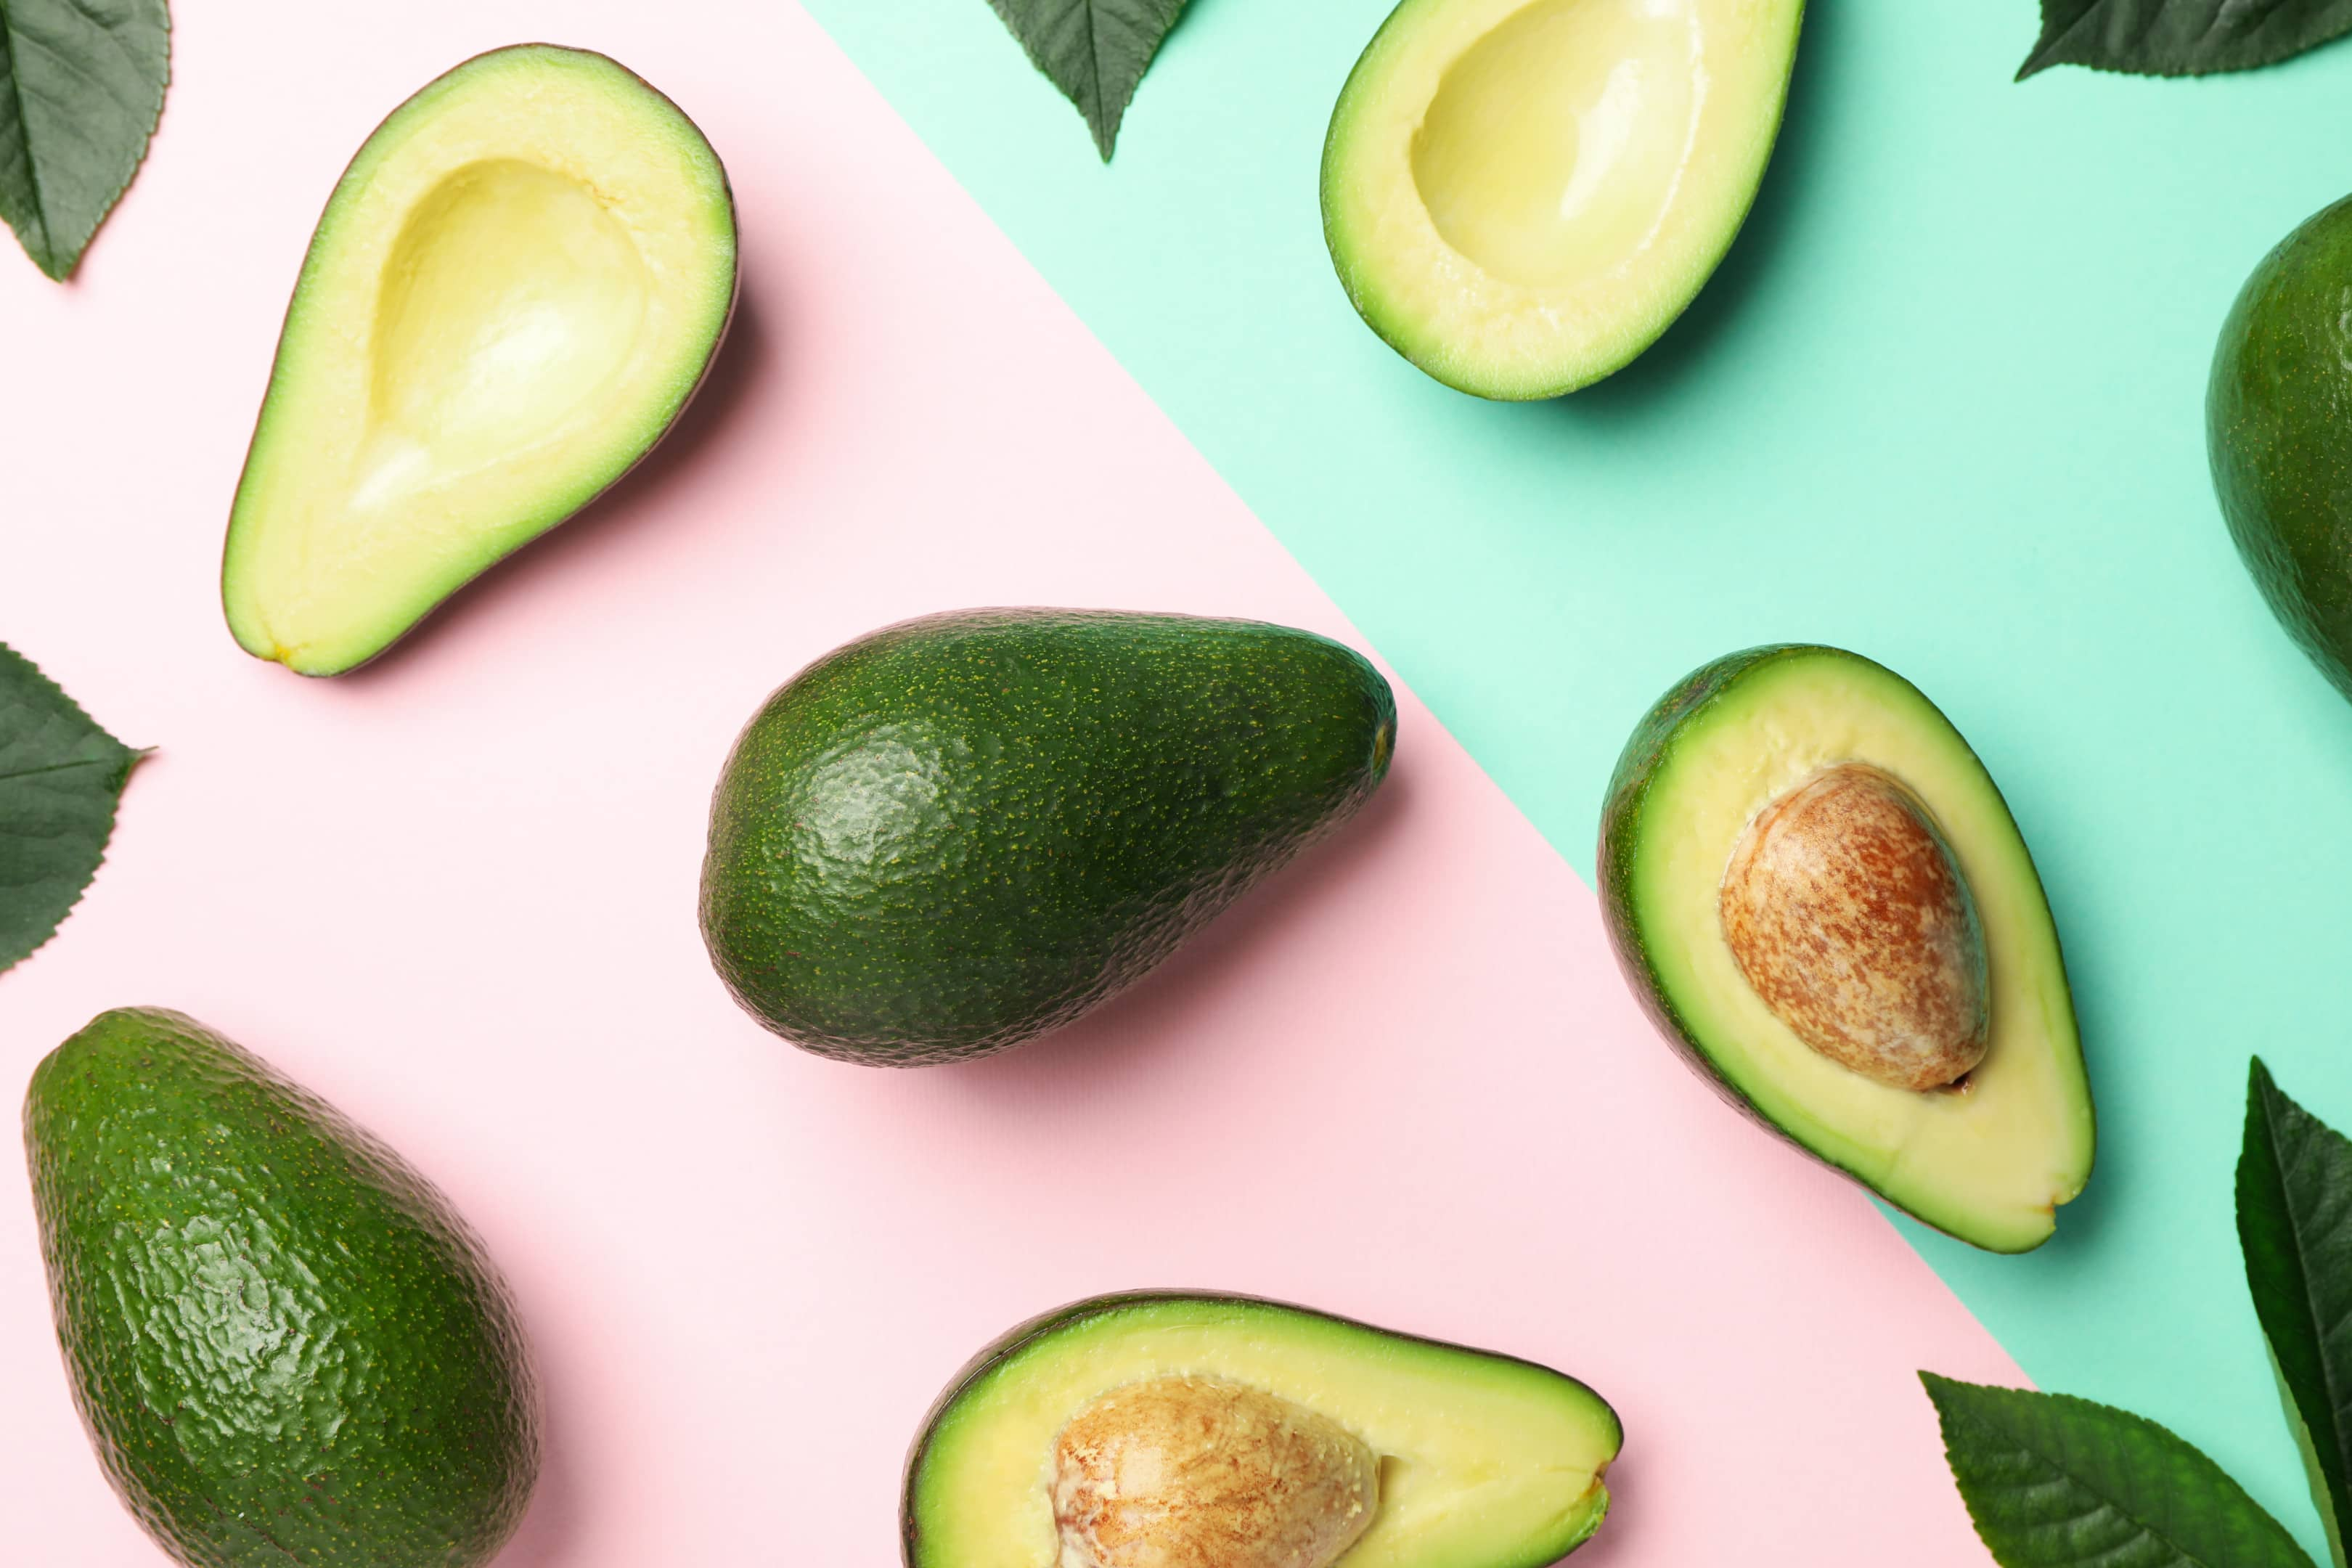 Avocado and avocado leaves on two tone background